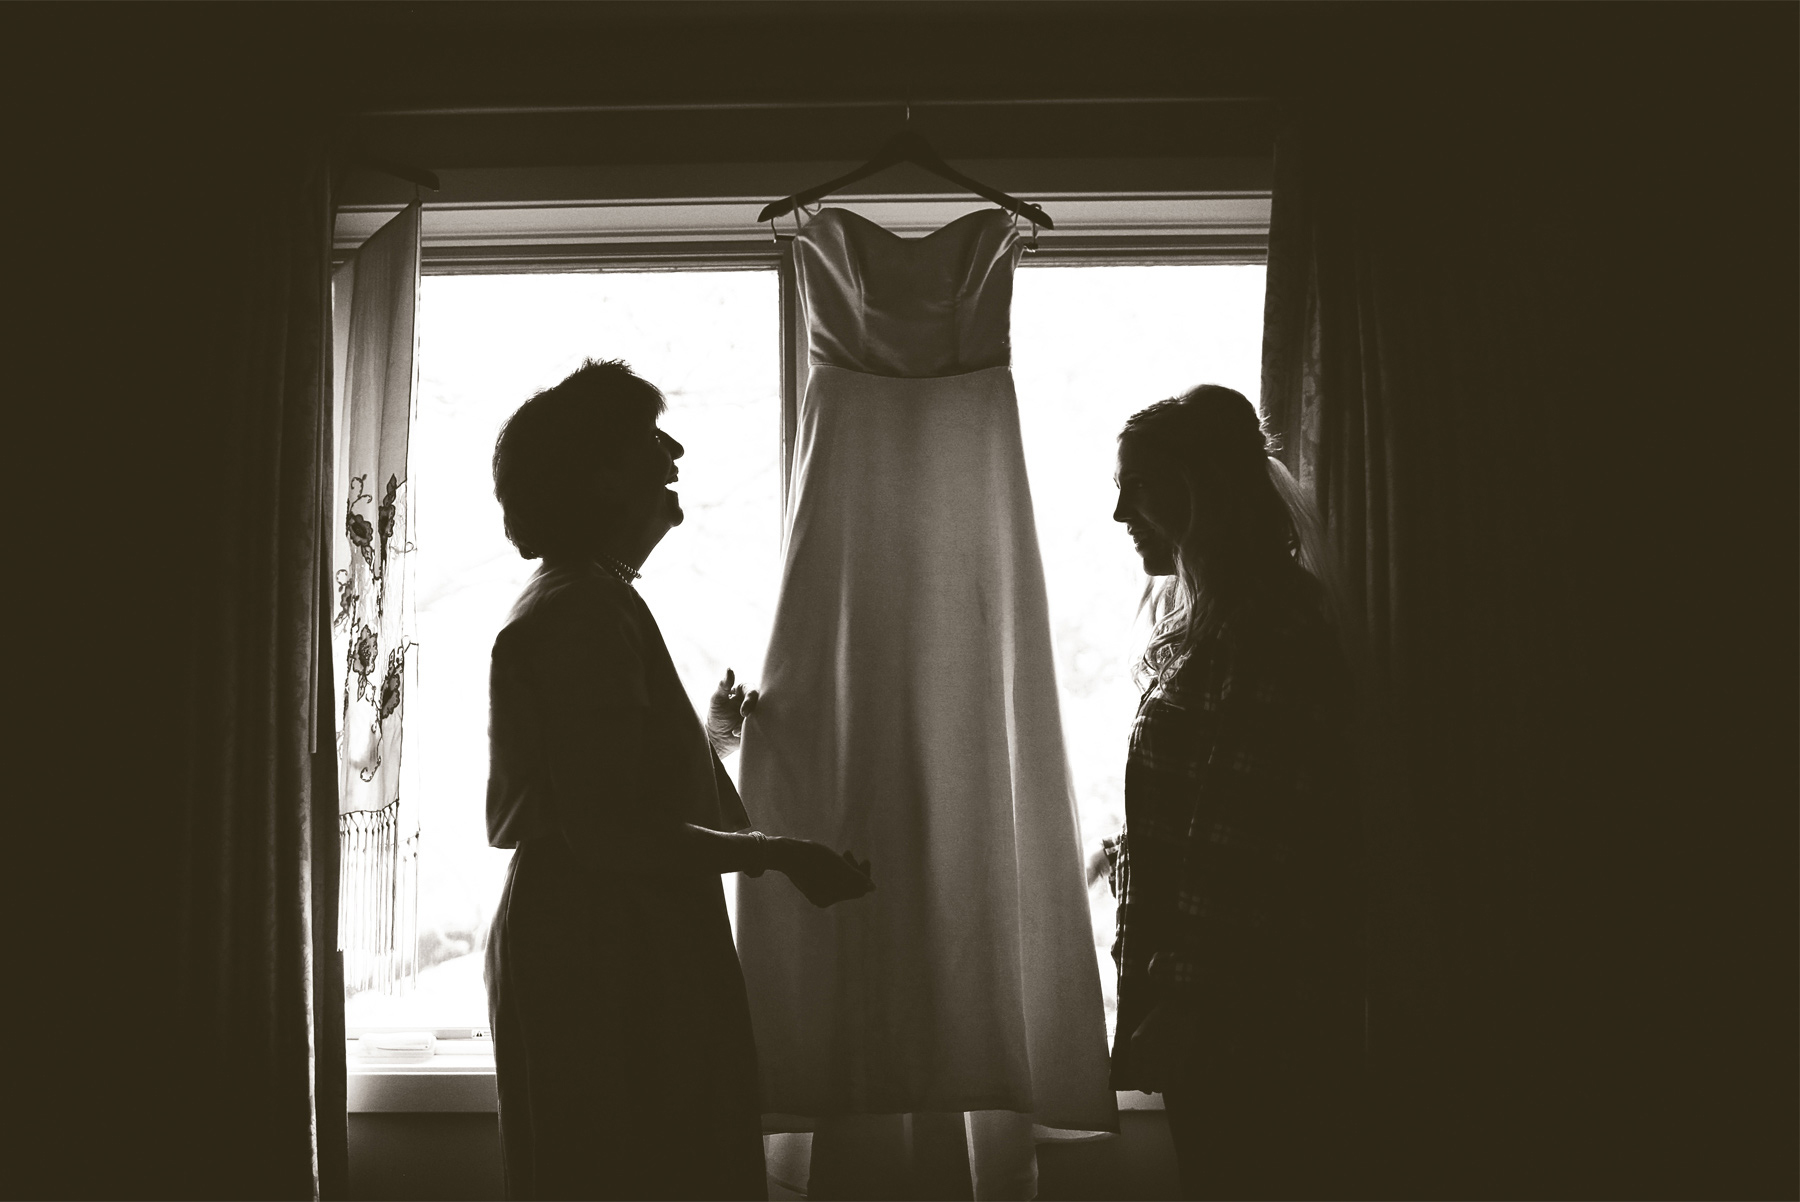 01-Minneapolis-Minnesota-Wedding-Photographer-by-Andrew-Vick-Photography-Fall-Autumn-Parents-House-Getting-Ready-Bride-Mother-Dress-Sepia-Krissy-and-James.jpg